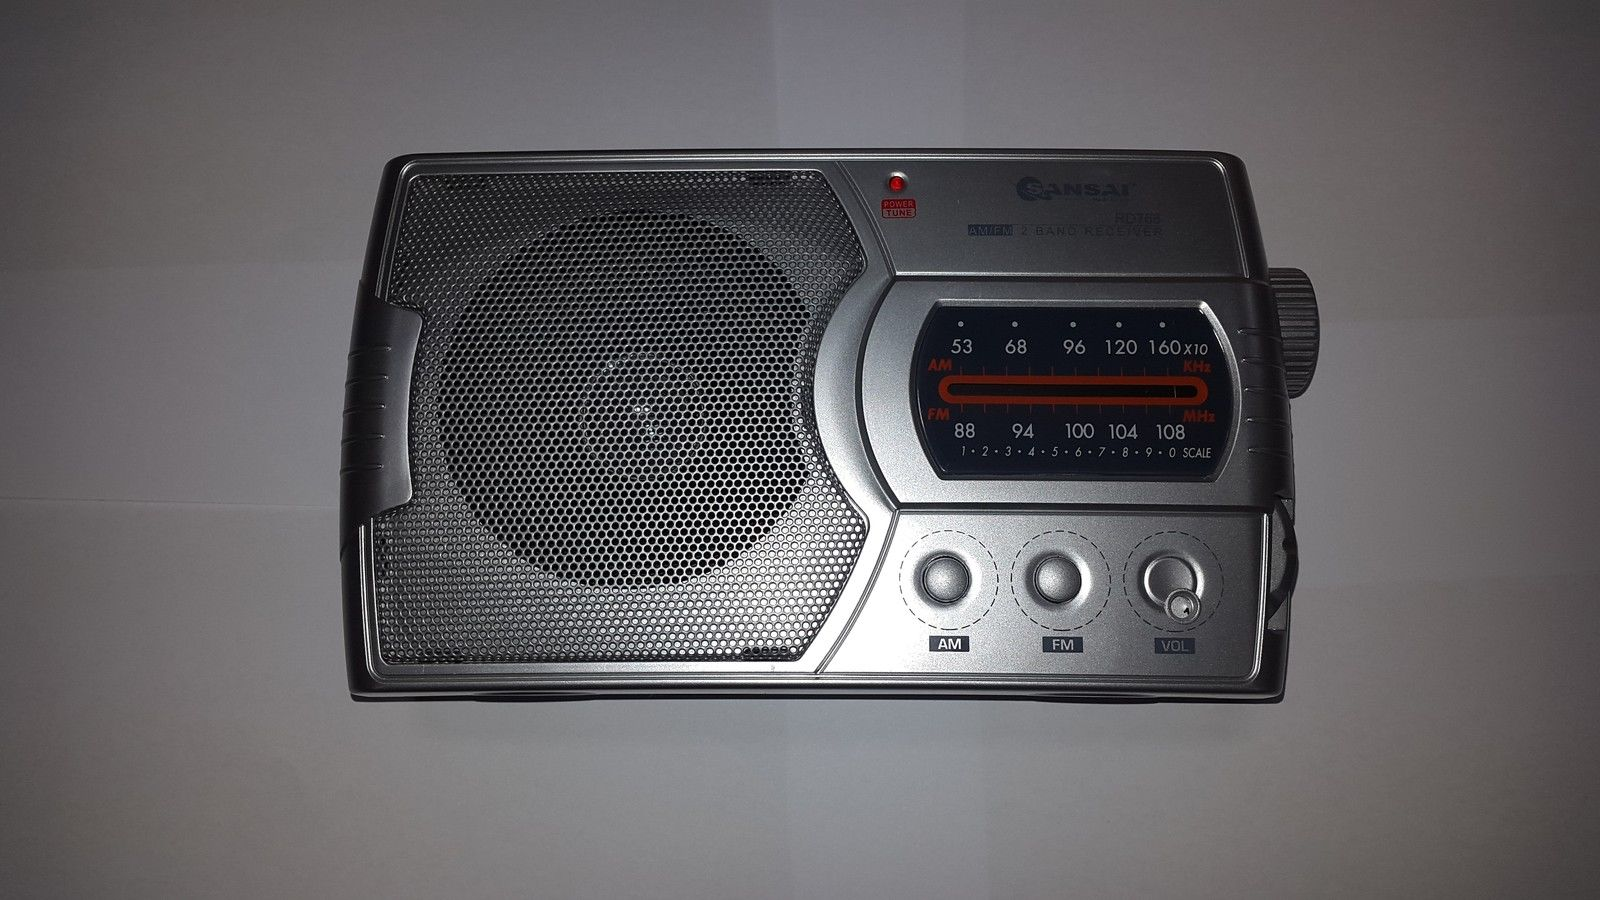 SANSAI RD-768 AM/FM PORTABLE RADIO WITH SPEAKER AND EARPHONE JAC